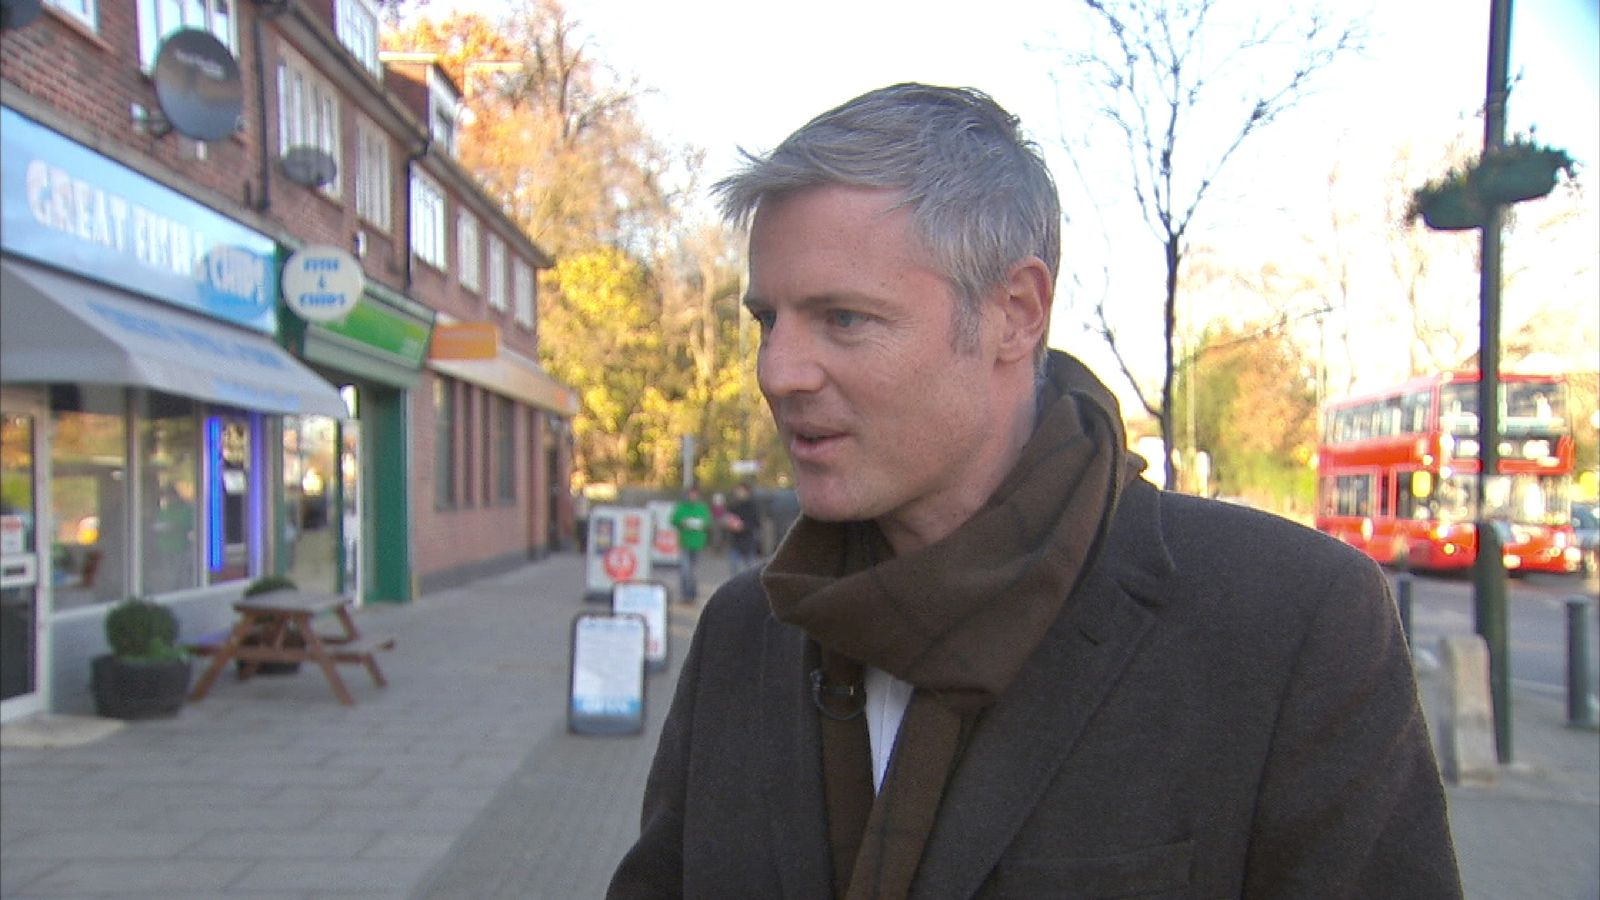 Zac Goldsmith insists he is an independent candidate